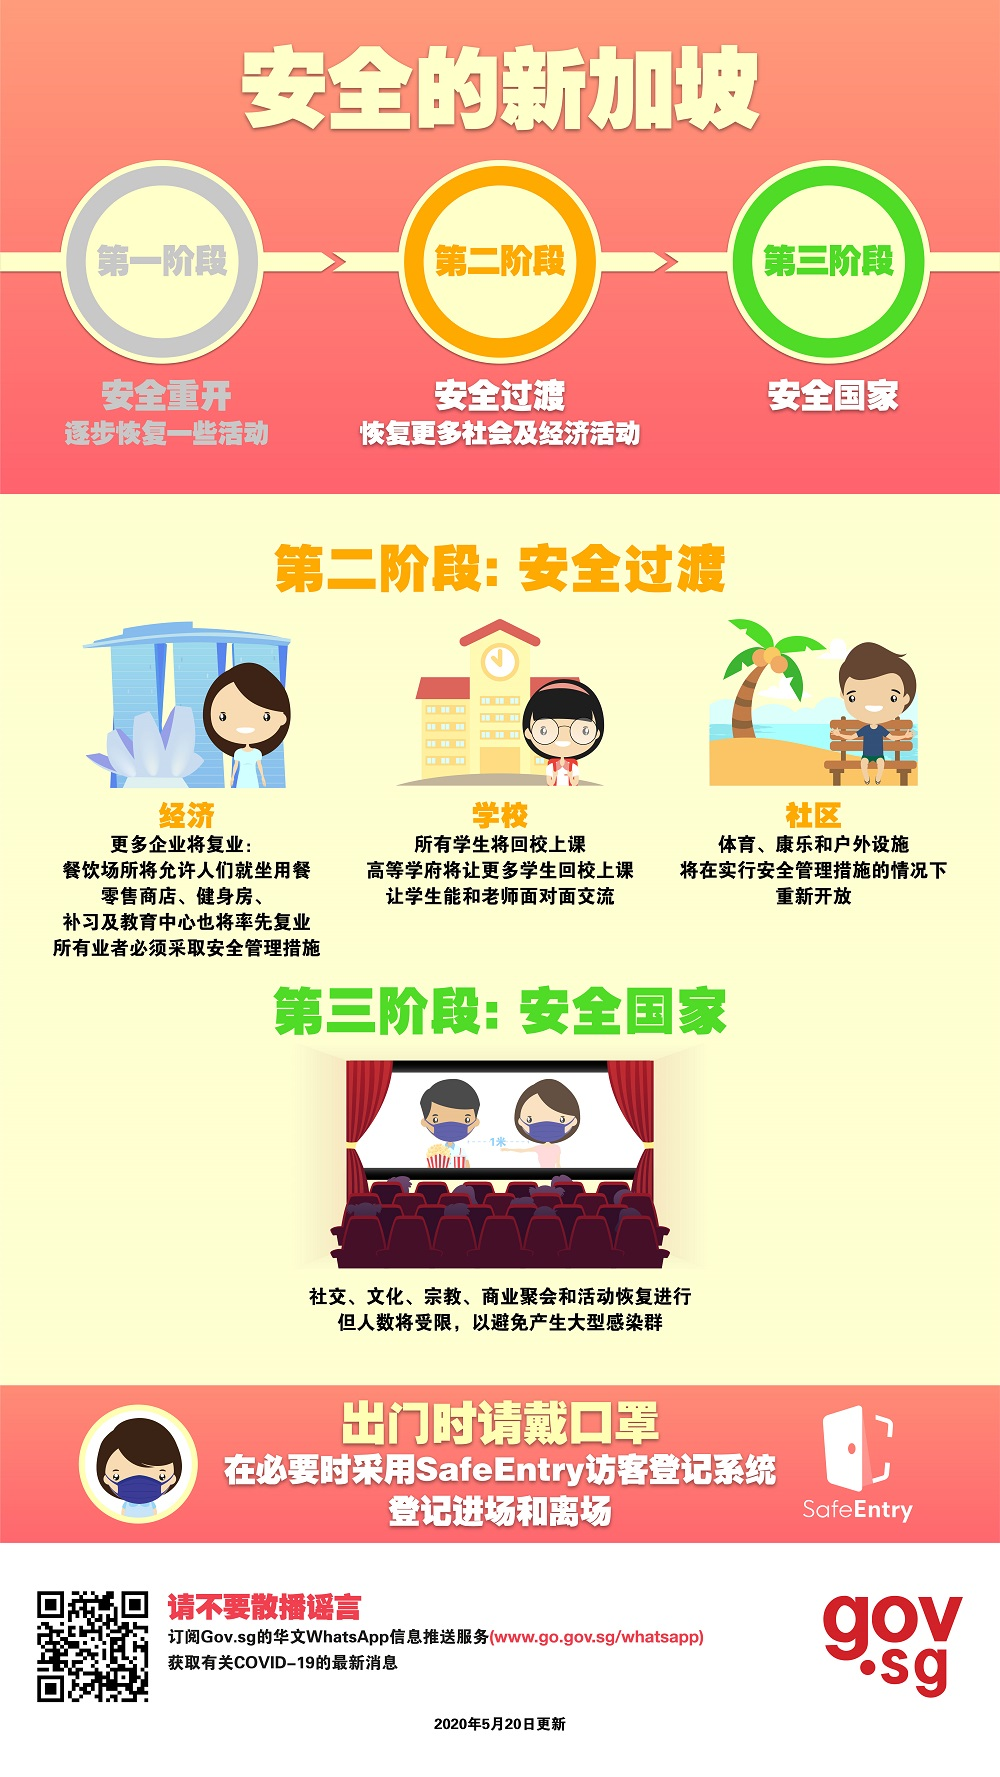 A Safe Singapore in 3 Phases (Phase 2 and 3) - Chinese